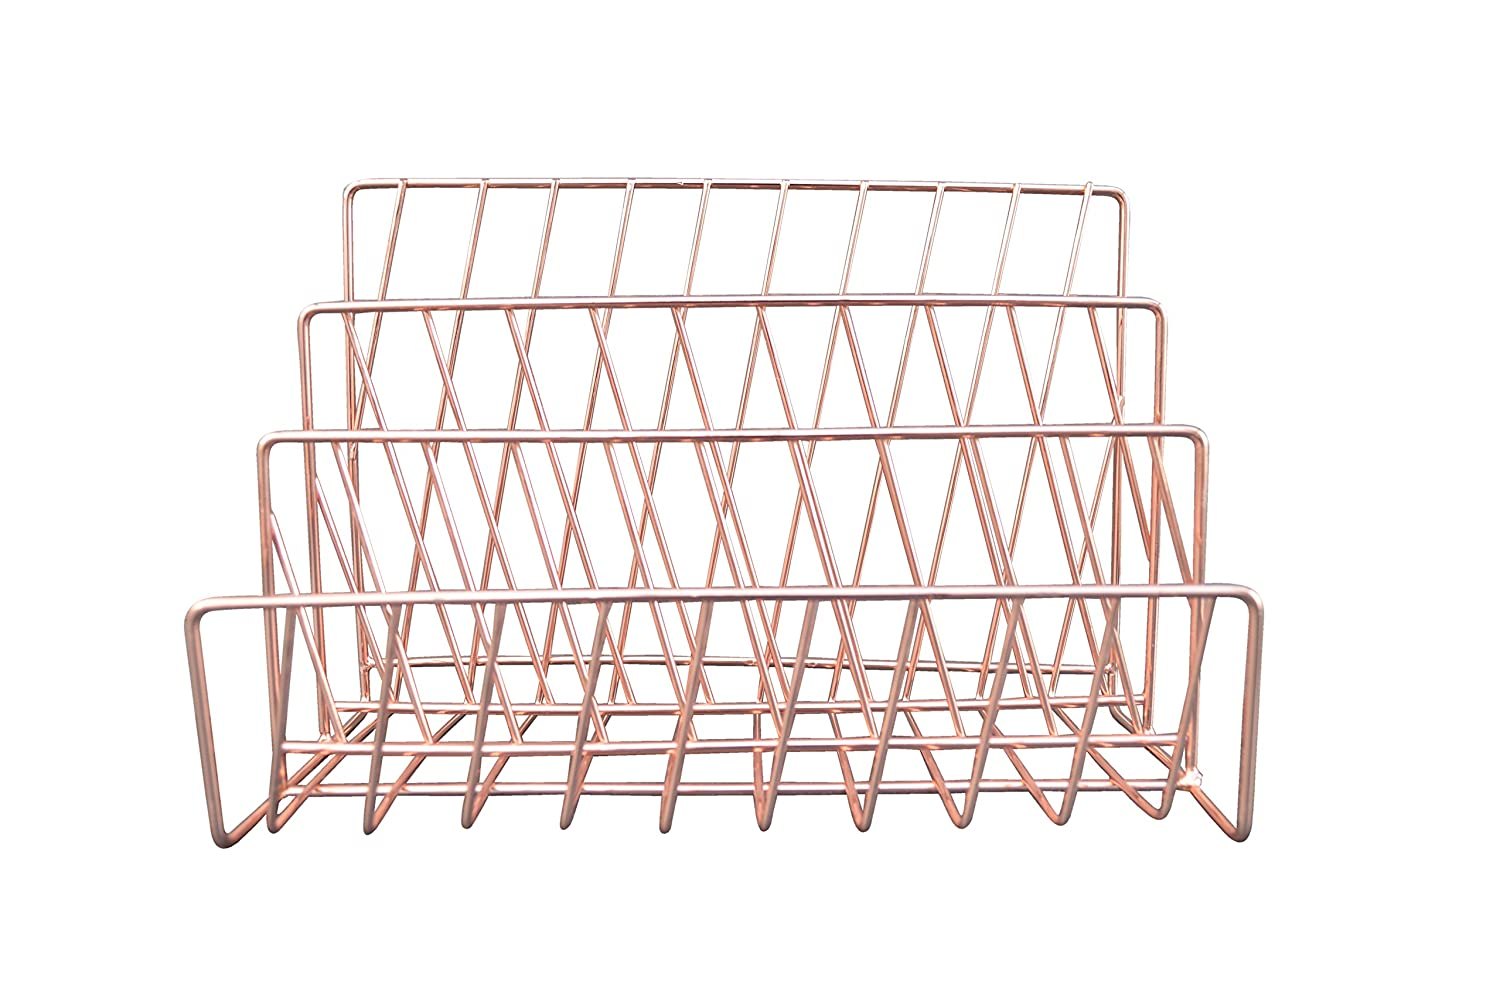 Candlelight 555871 Diagonal Lines Wire Letter Rack - Rose Gold Candlelight Products Ltd